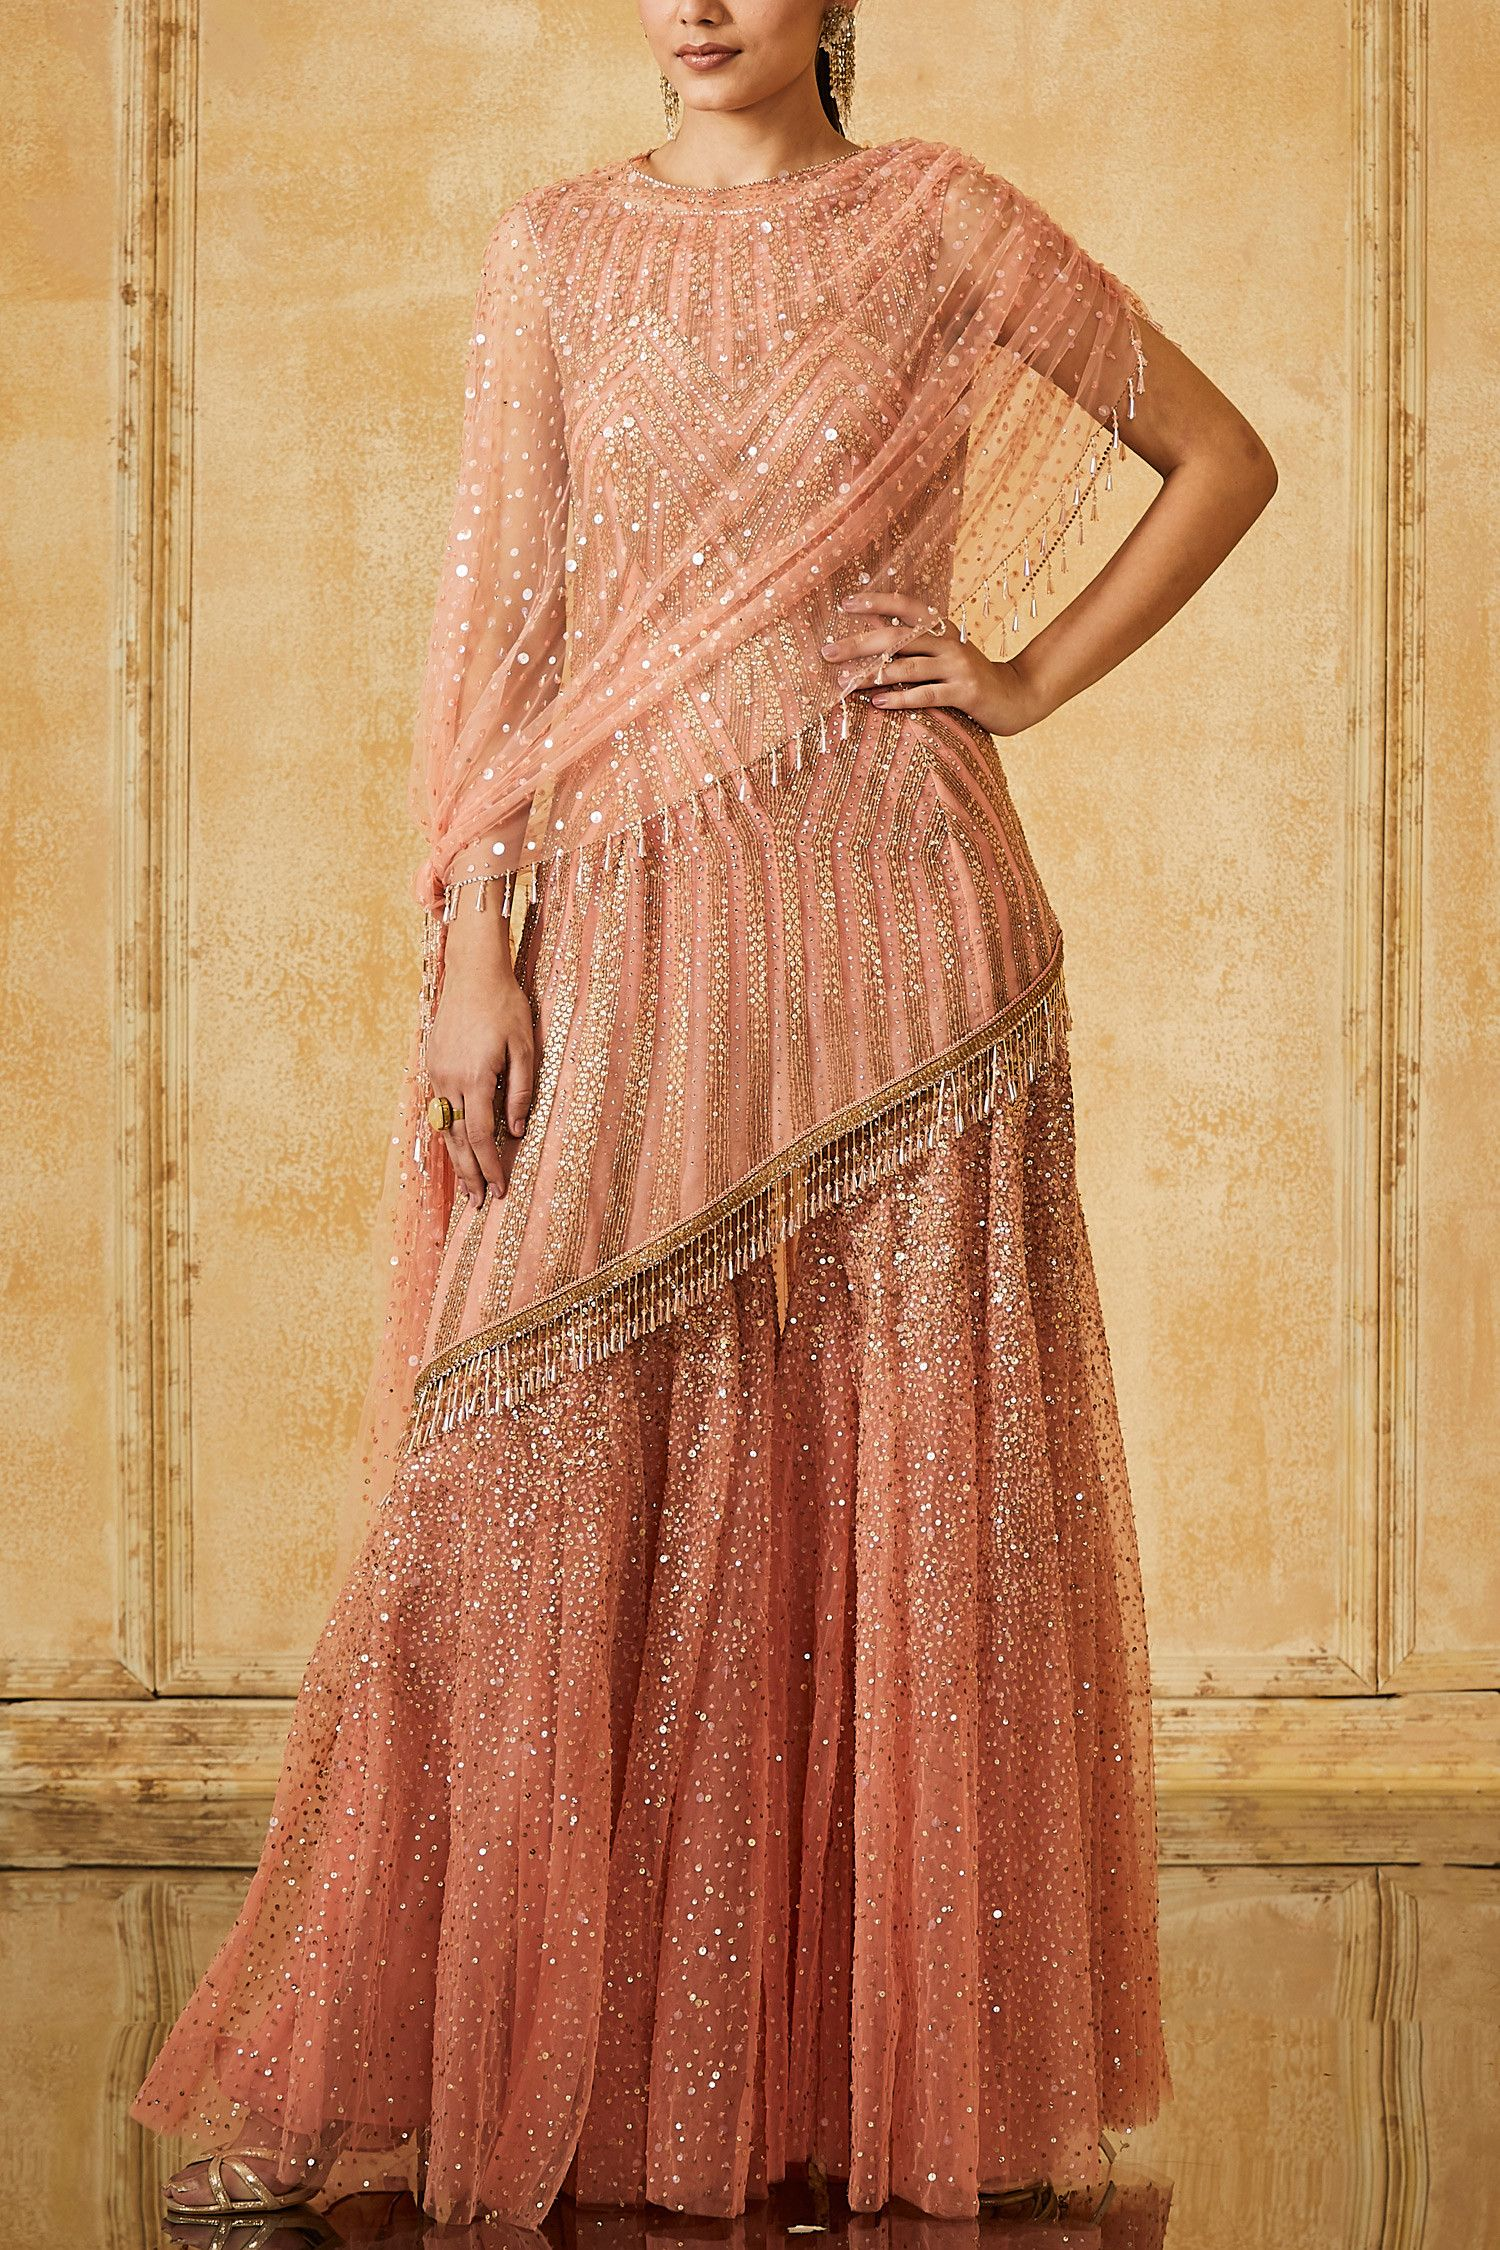 Peach Sharara With Kurti And Dupatta Designed By Tarun Tahiliani At Aashni Co Fashion Indian Fashion Designers Sharara Designs